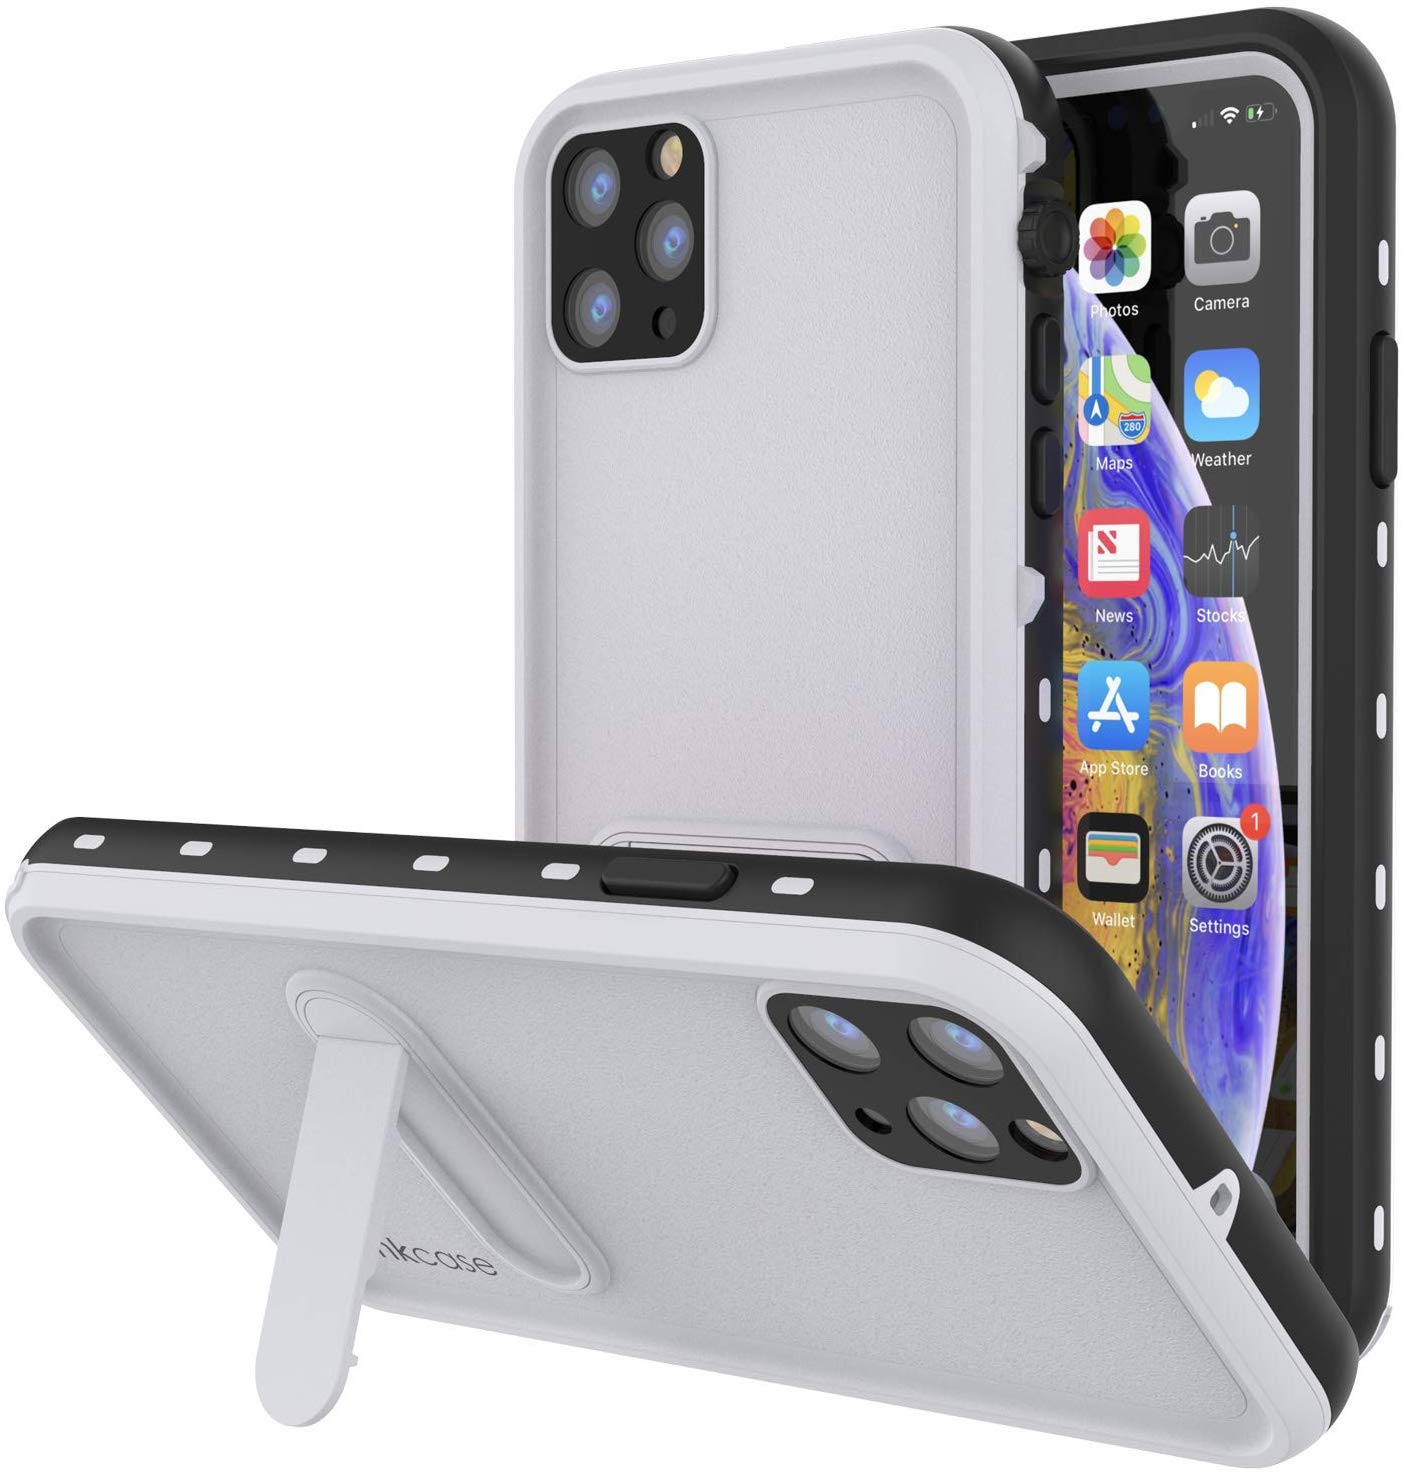 iPhone 11 Pro Max Waterproof Case, Punkcase [KickStud Series] Armor Cover [White]